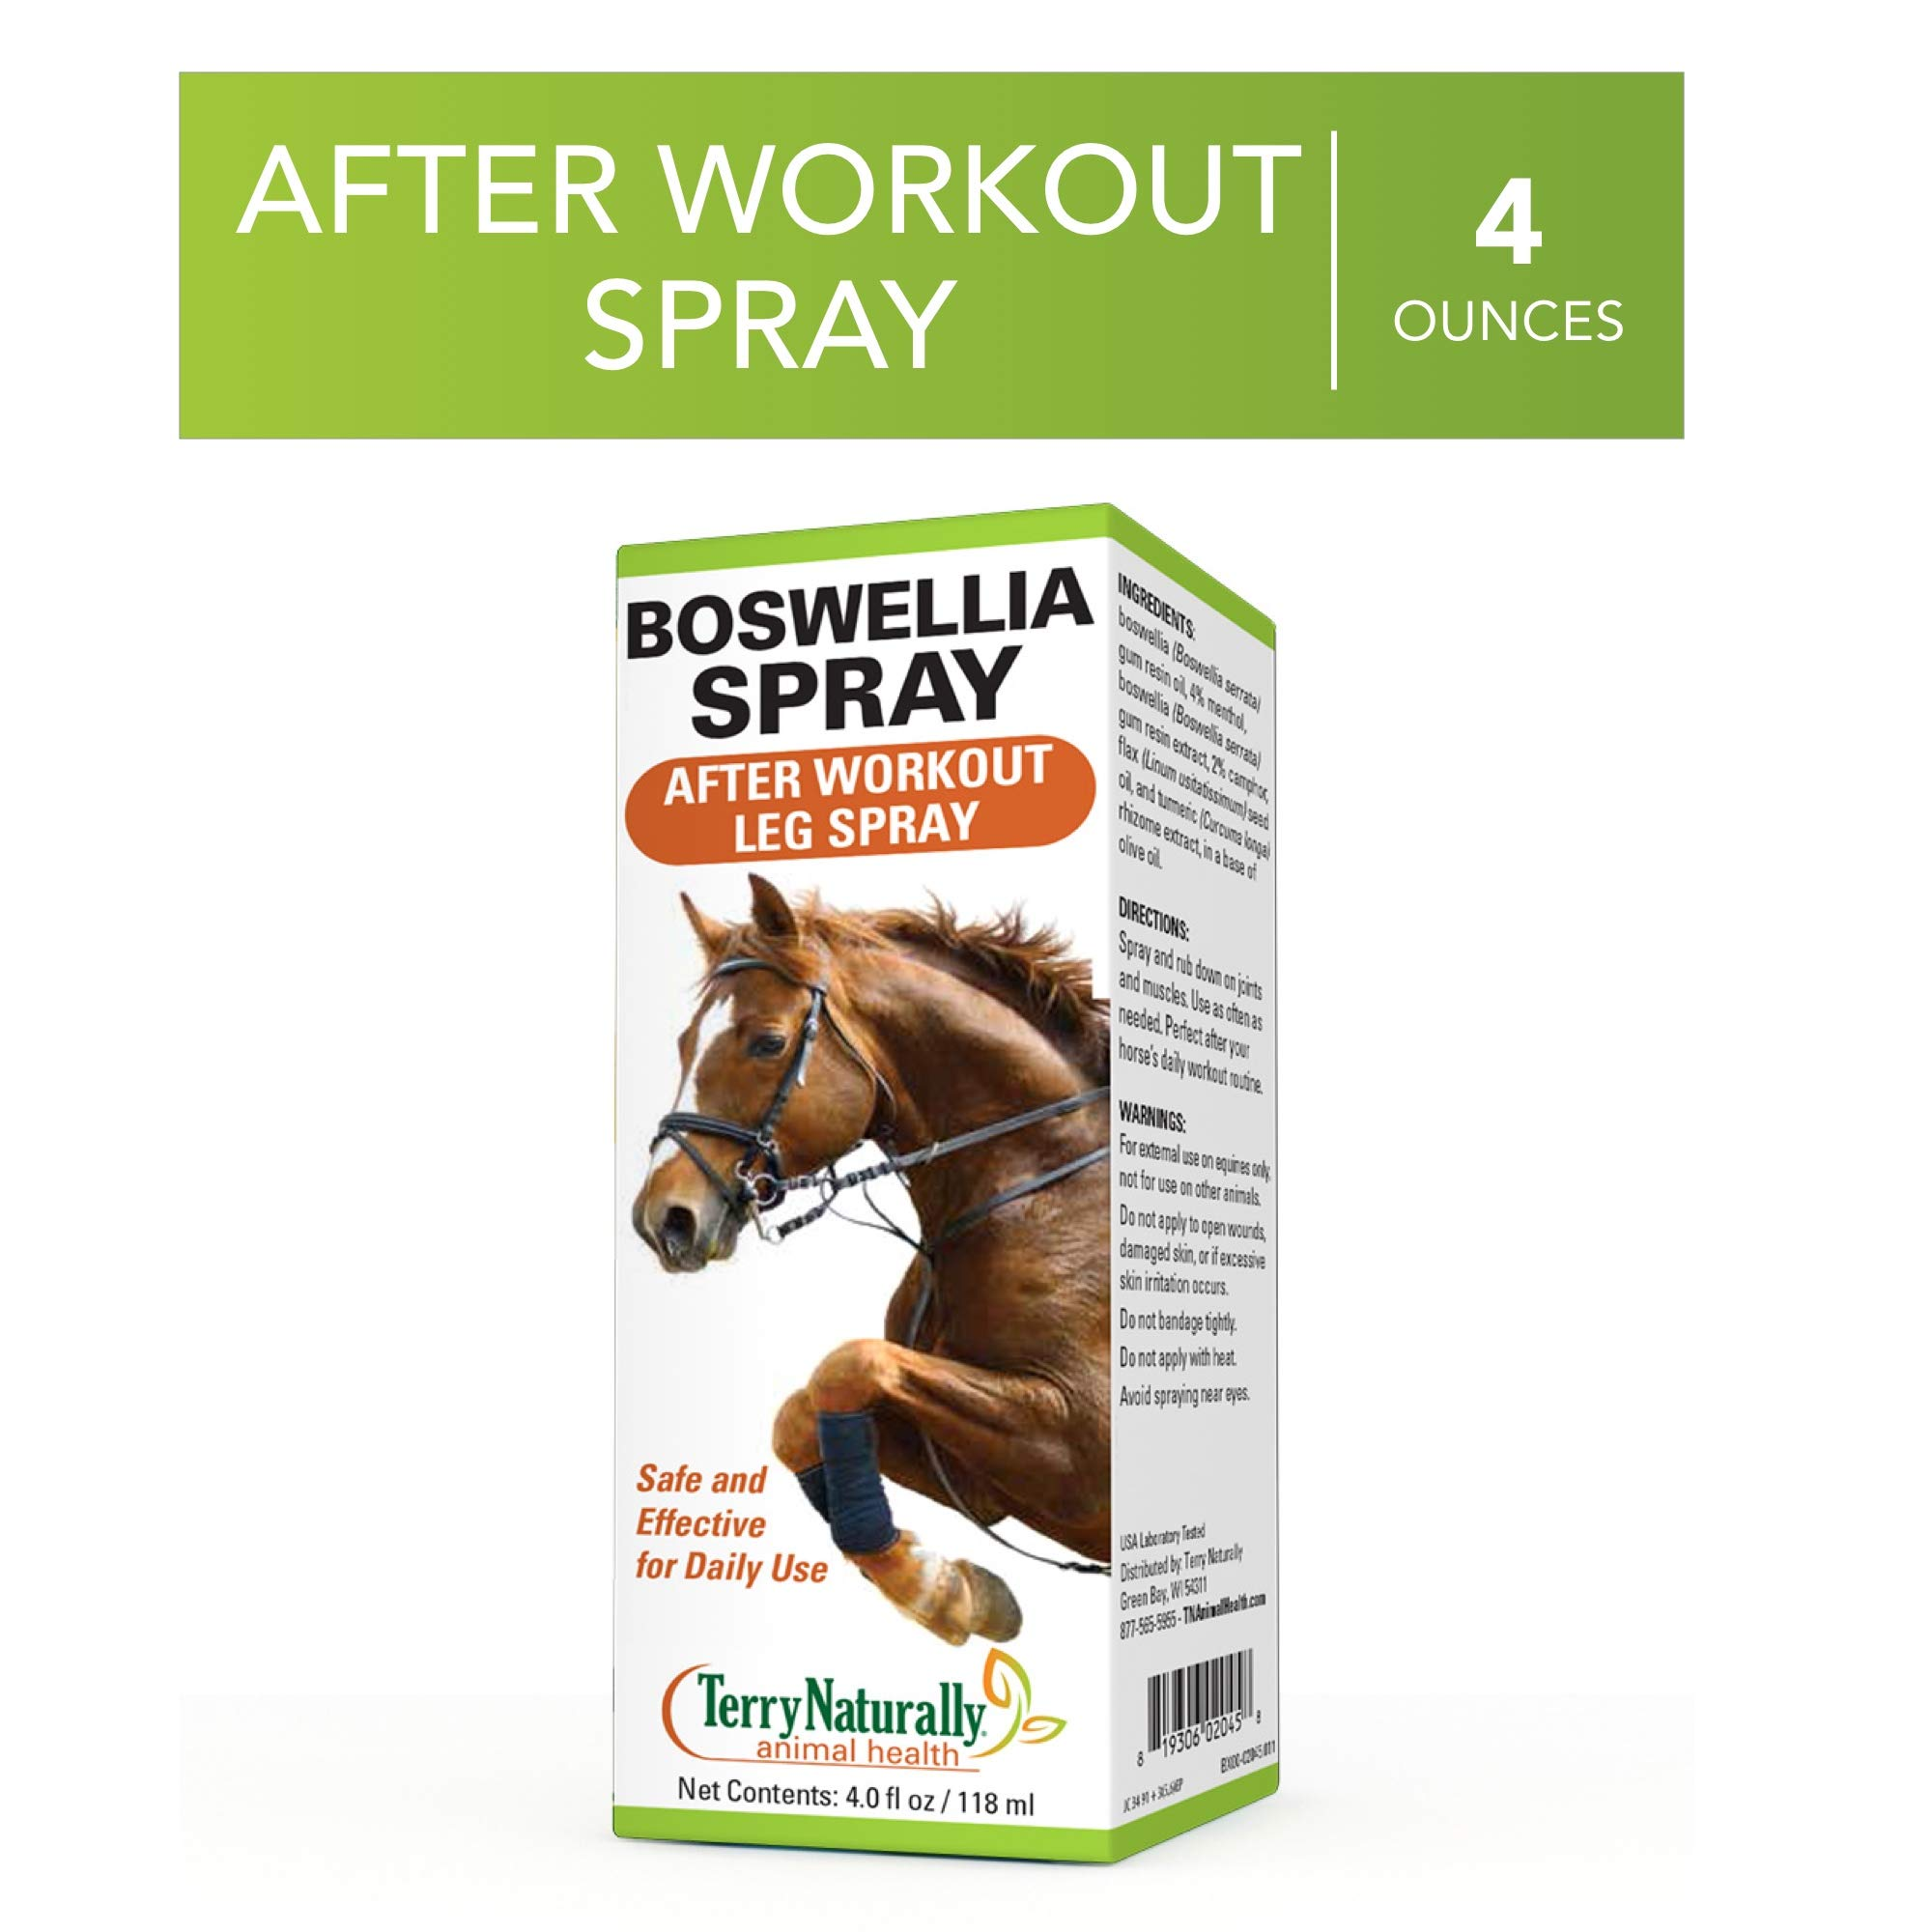 Terry Naturally Animal Health Boswellia Spray - 4 fl oz - After Workout Leg Spray for Horses, Safe & Effective for Daily Application On Joints & Muscles - External Use, for Equines Only by Terry Naturally